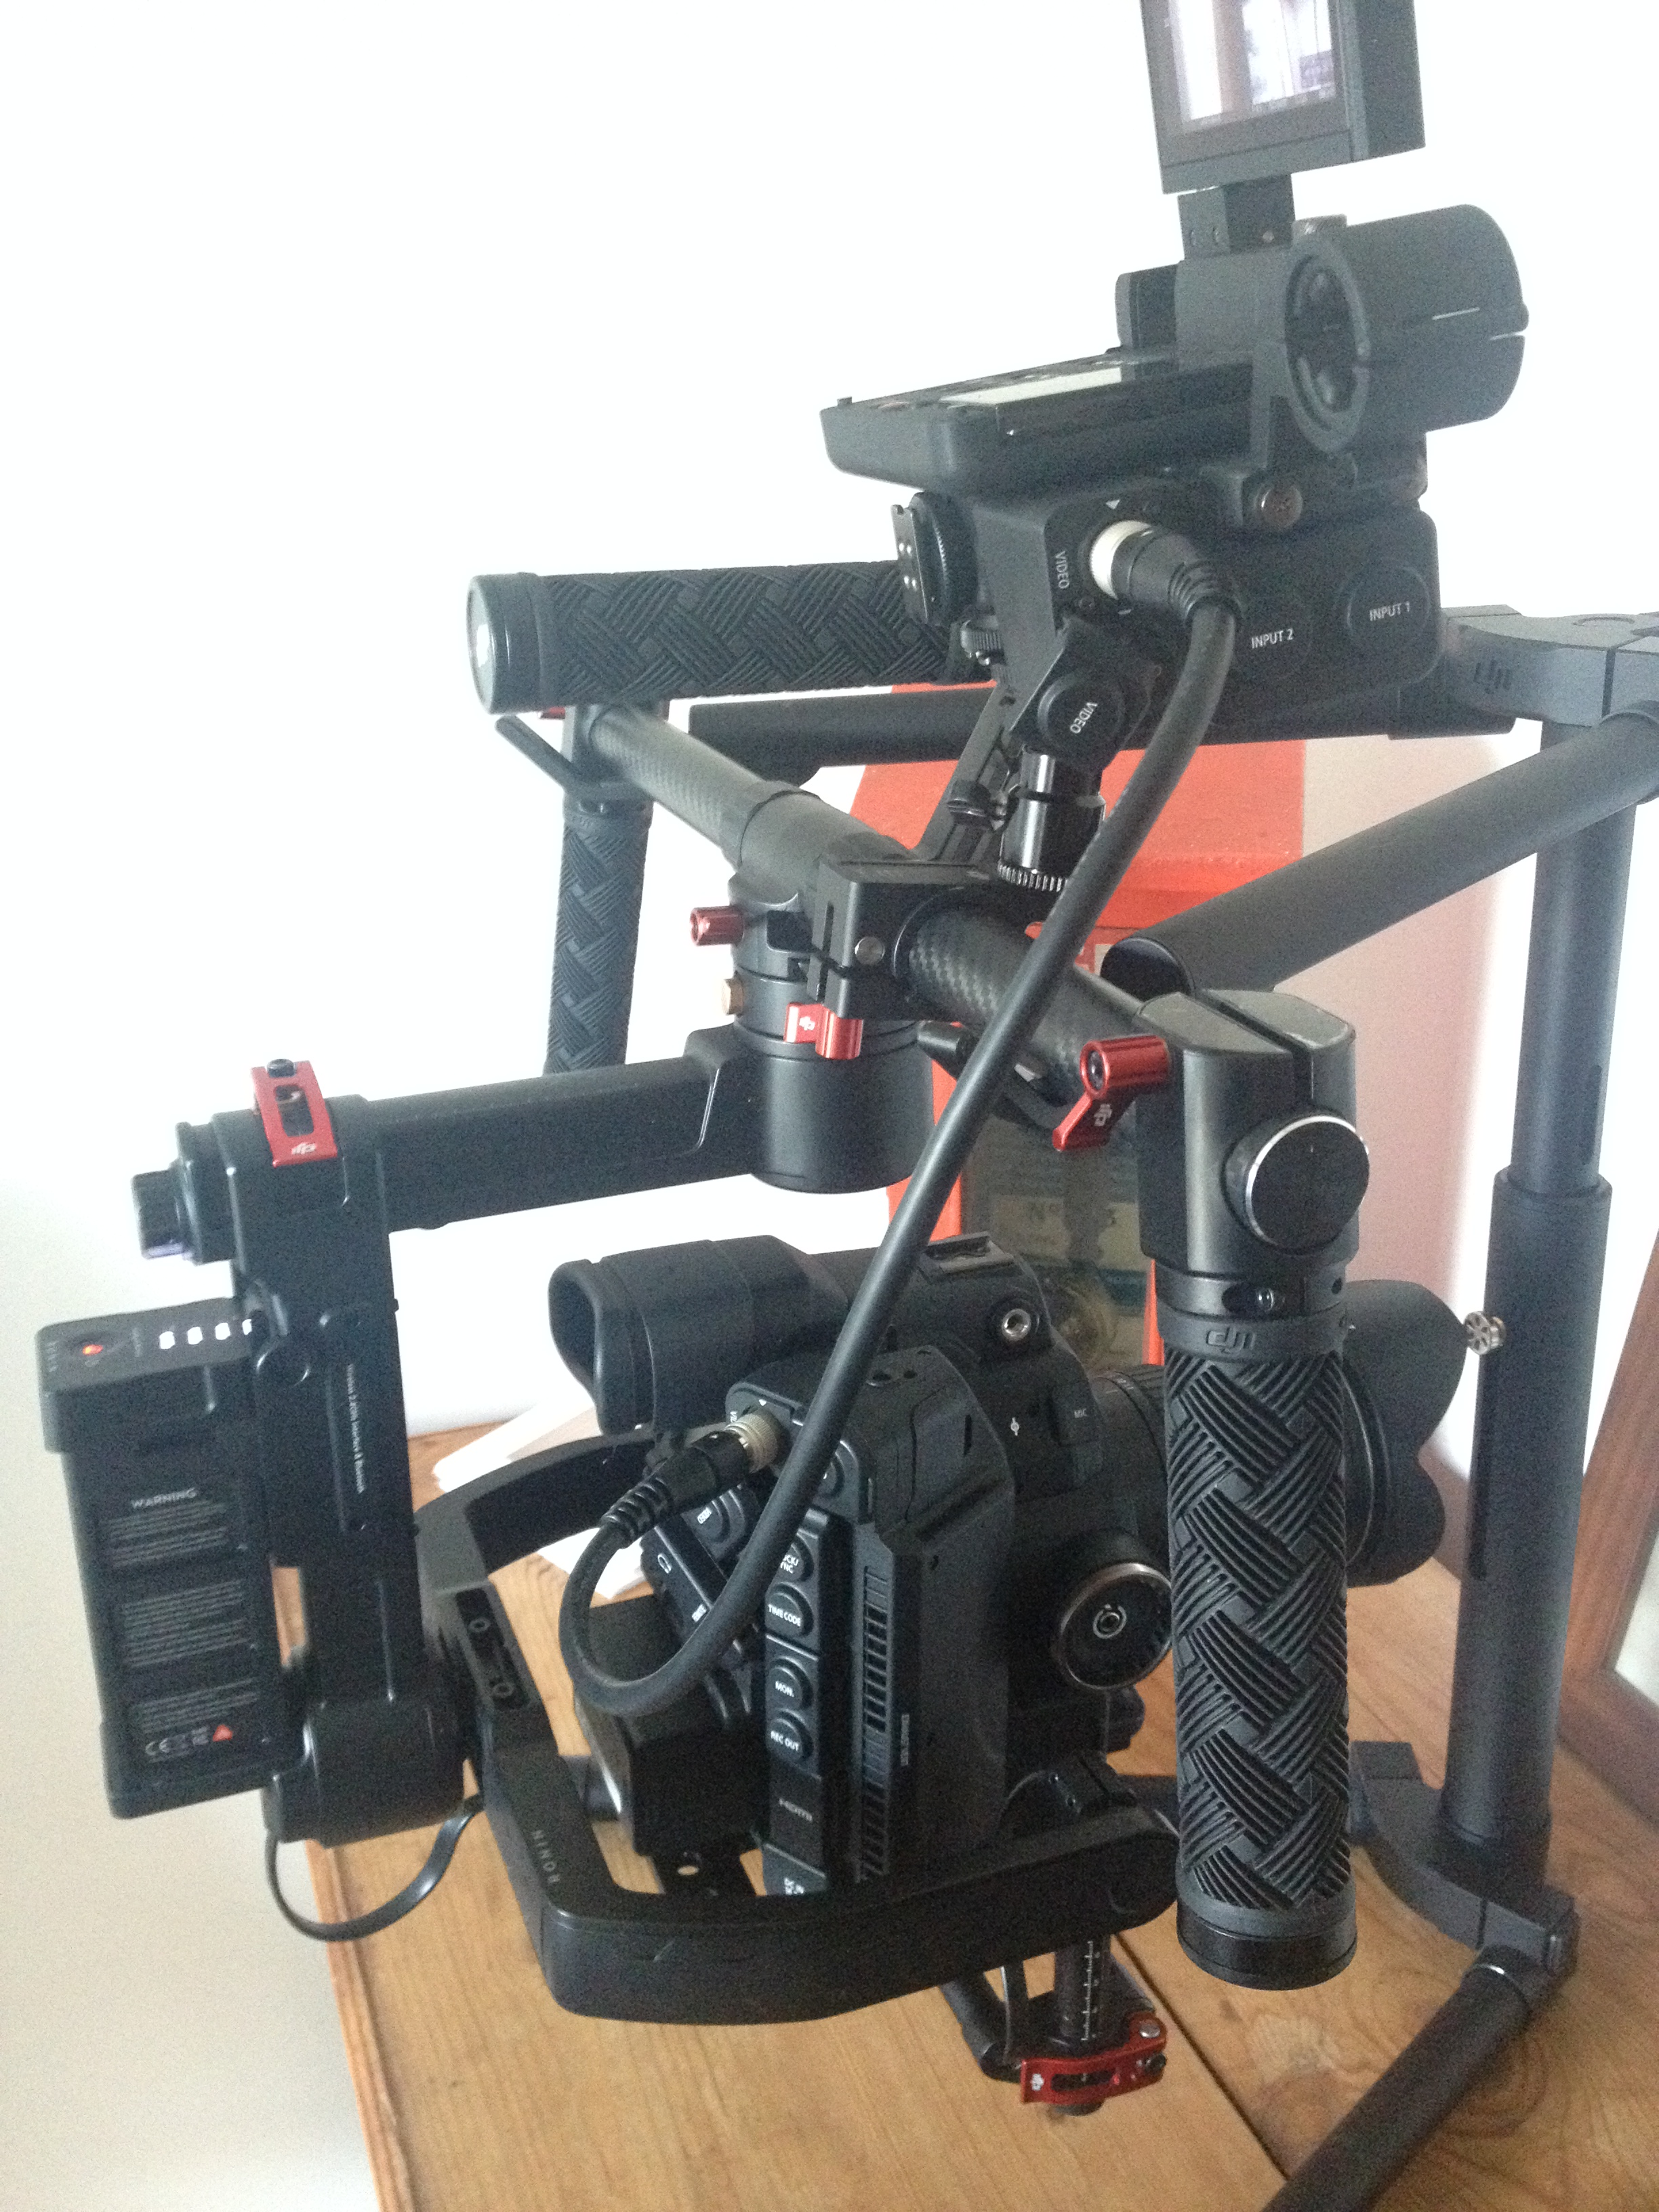 Does the C300 mark ii work on the Ronin M